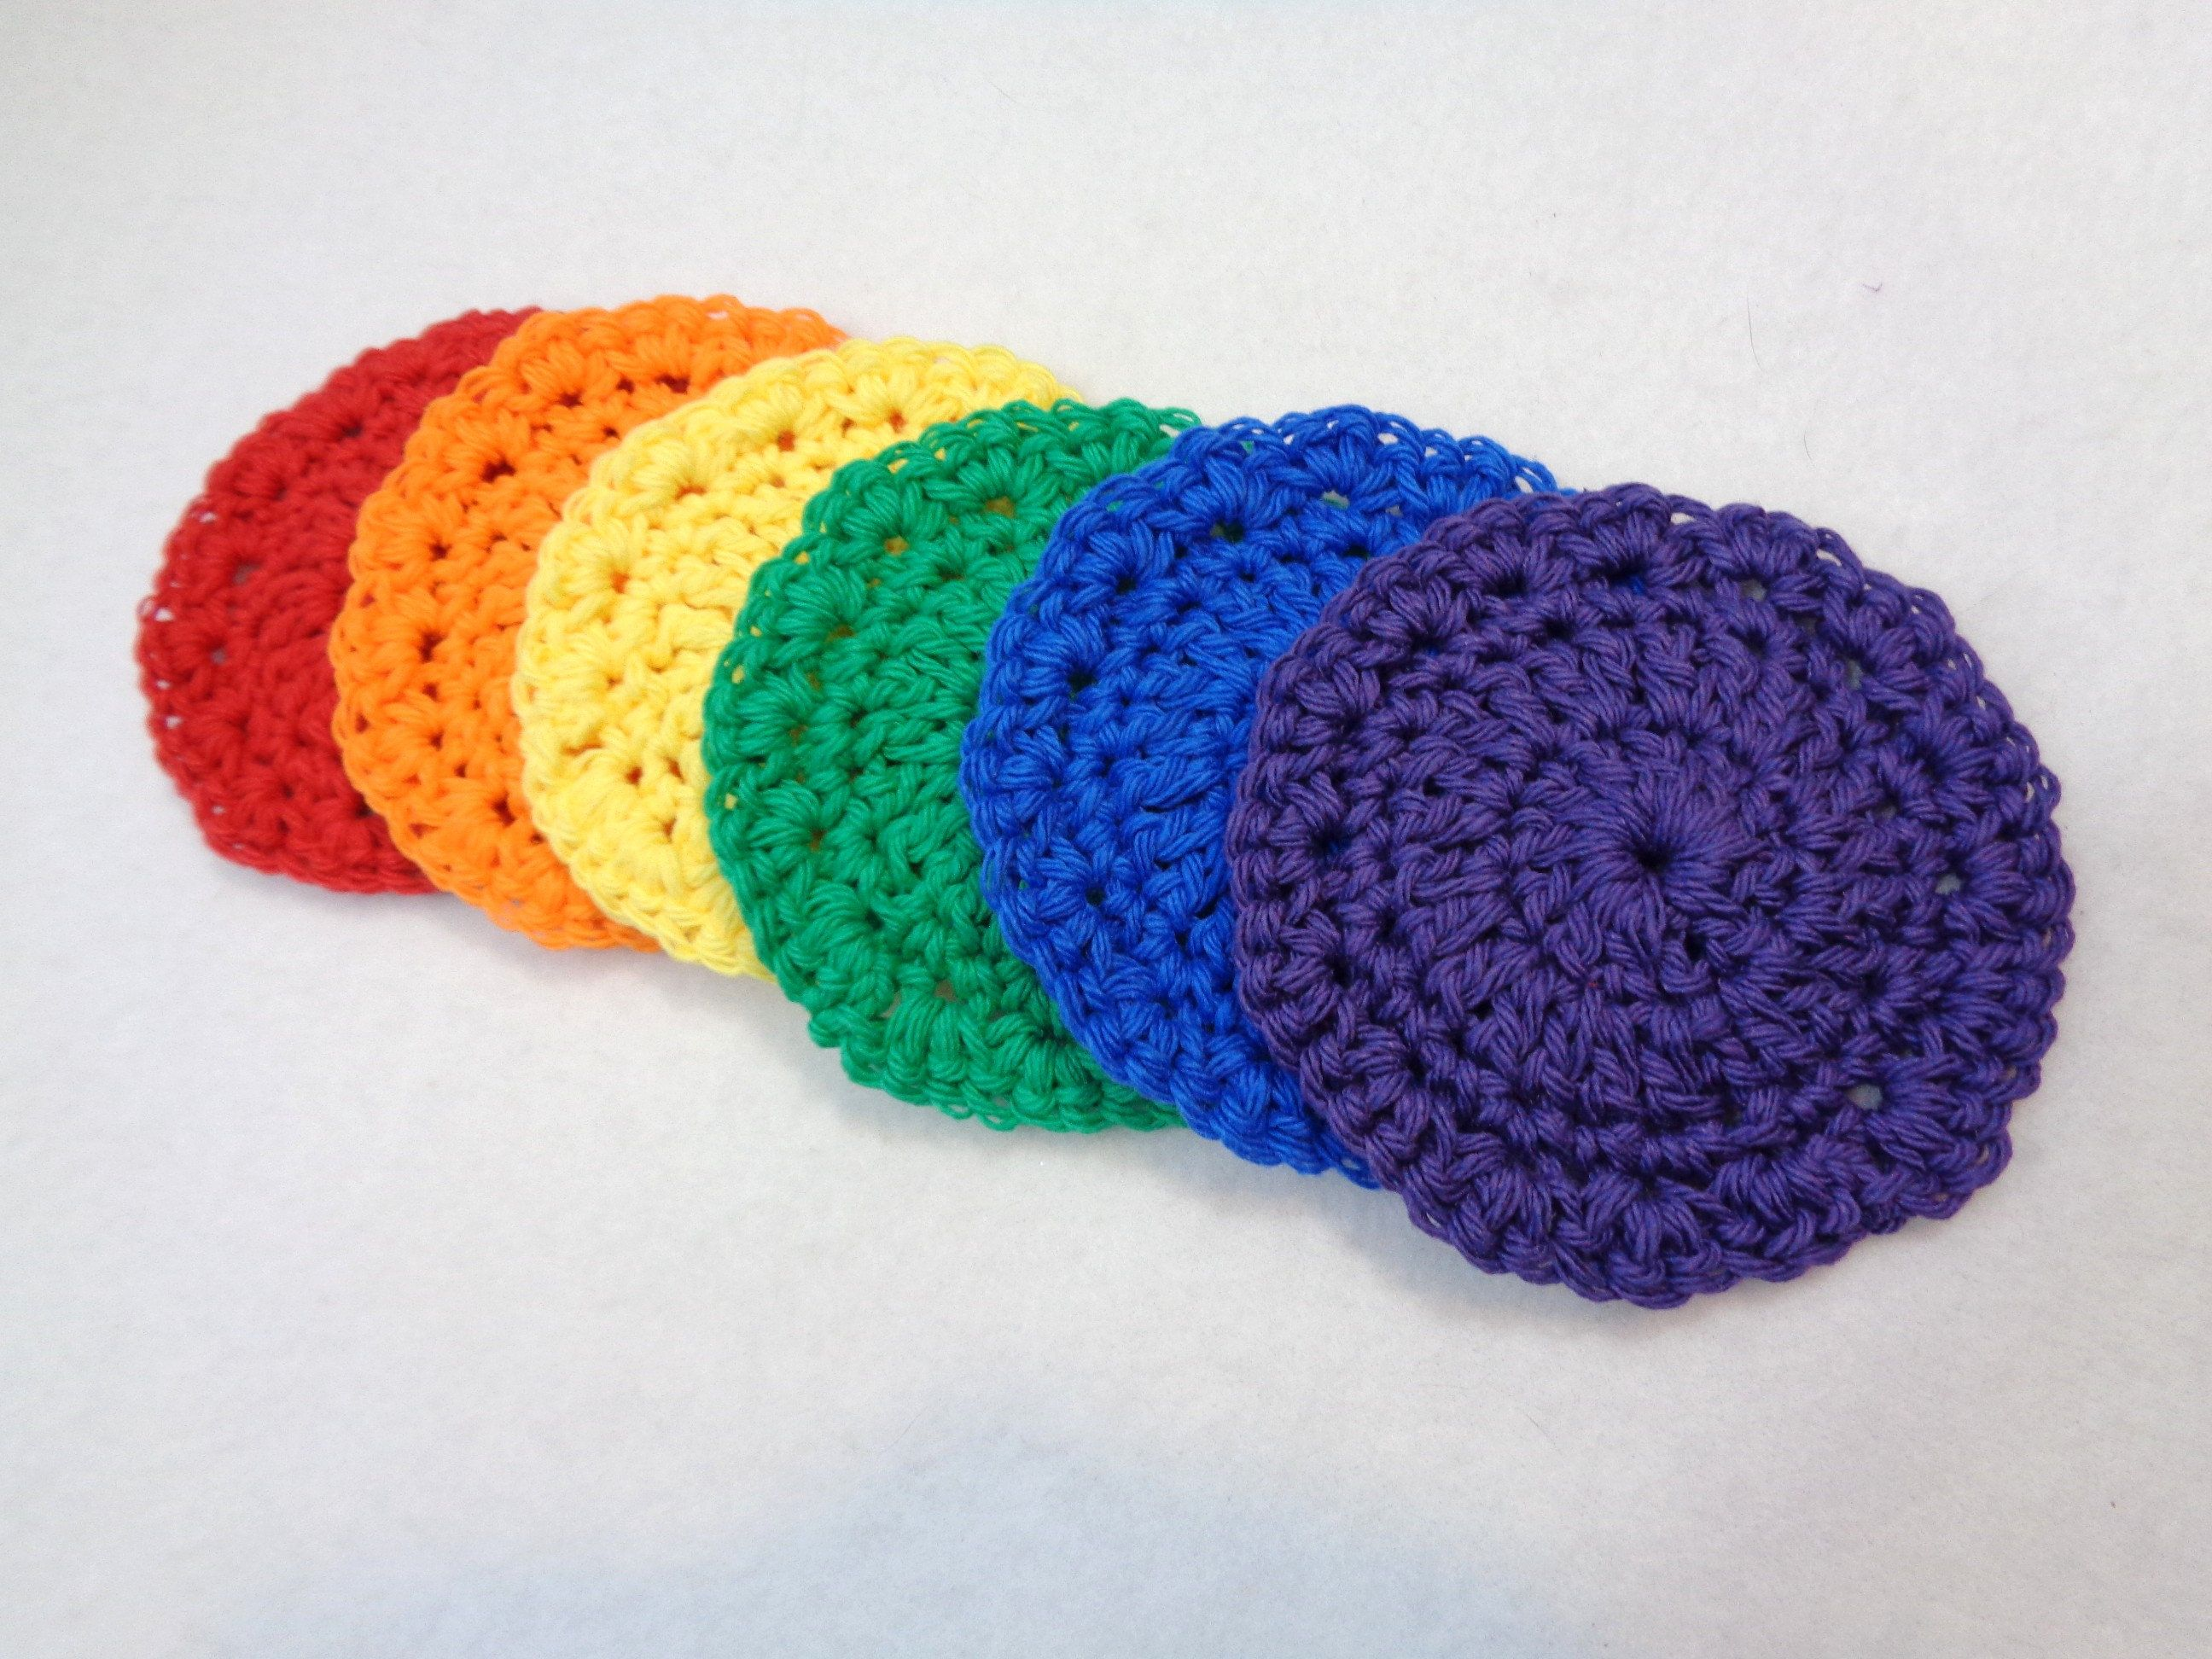 Rainbow Cotton Facial Cloths Cotton Coasters Baby Washcloths Reusable Ecofriendly Cloths Mother S Day Present Baby Washcloth Facial Cloths